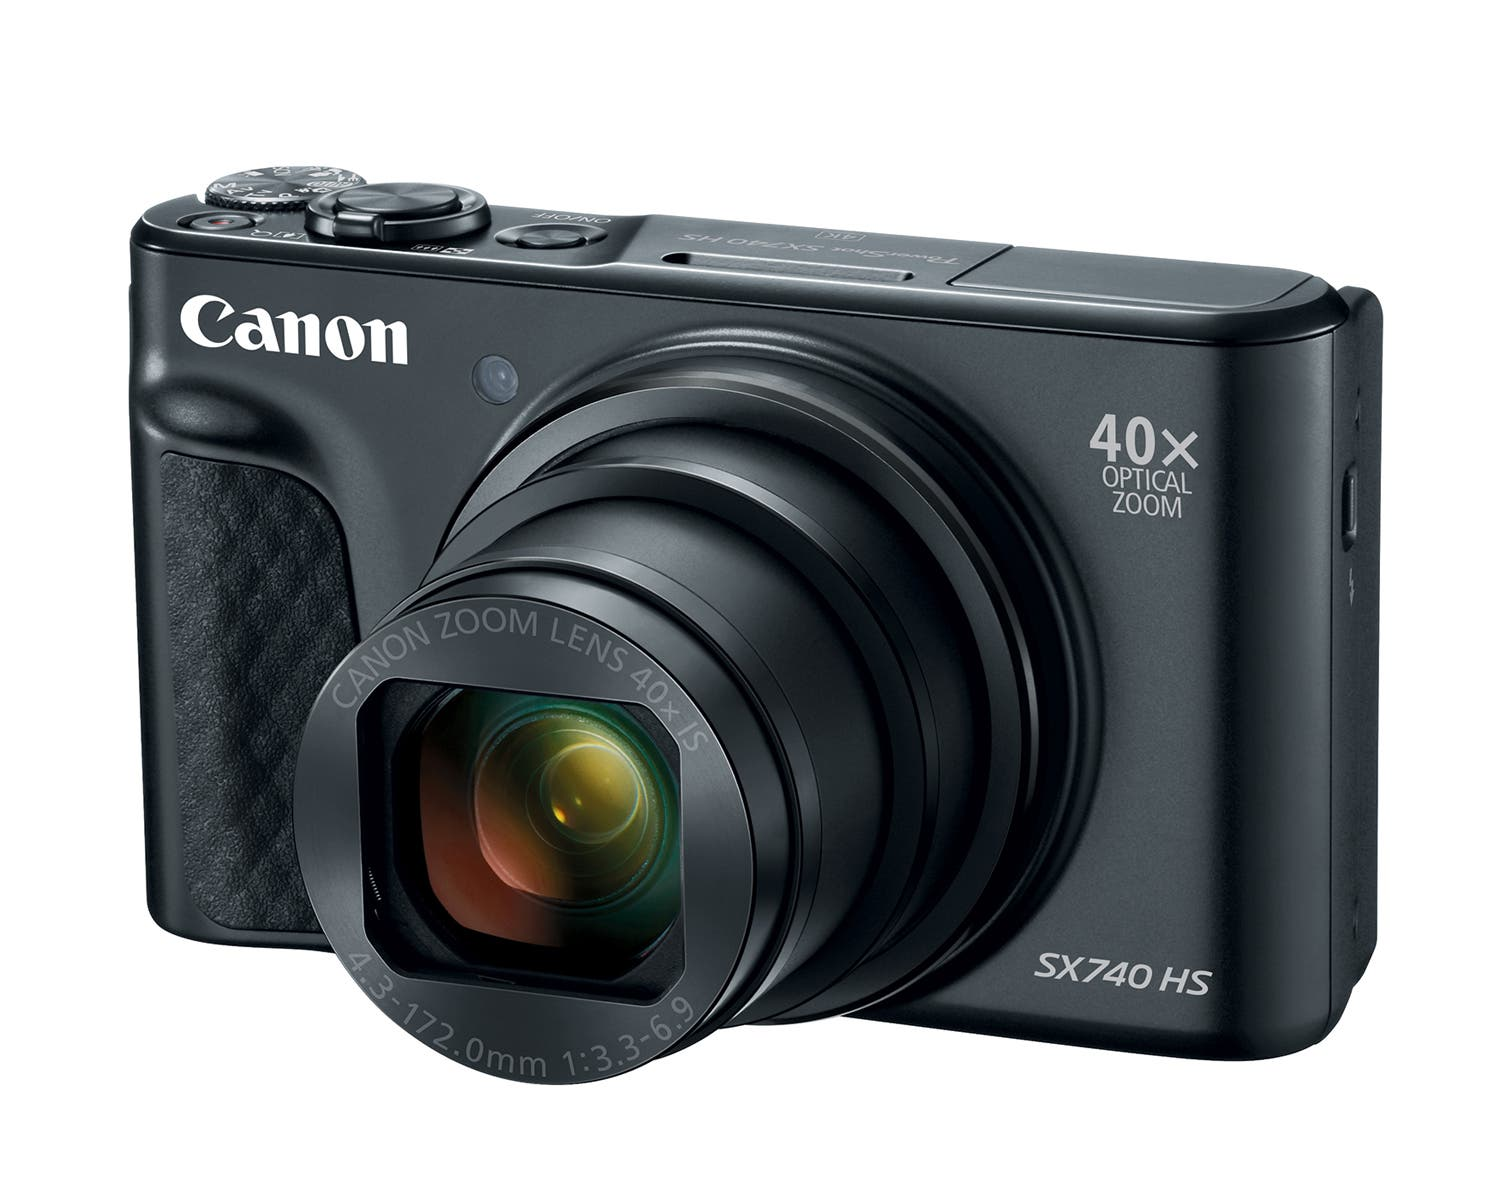 The Canon PowerShot SX740 HS Shoots 4K Video While Some of Their Higher End DSLRs Do Not